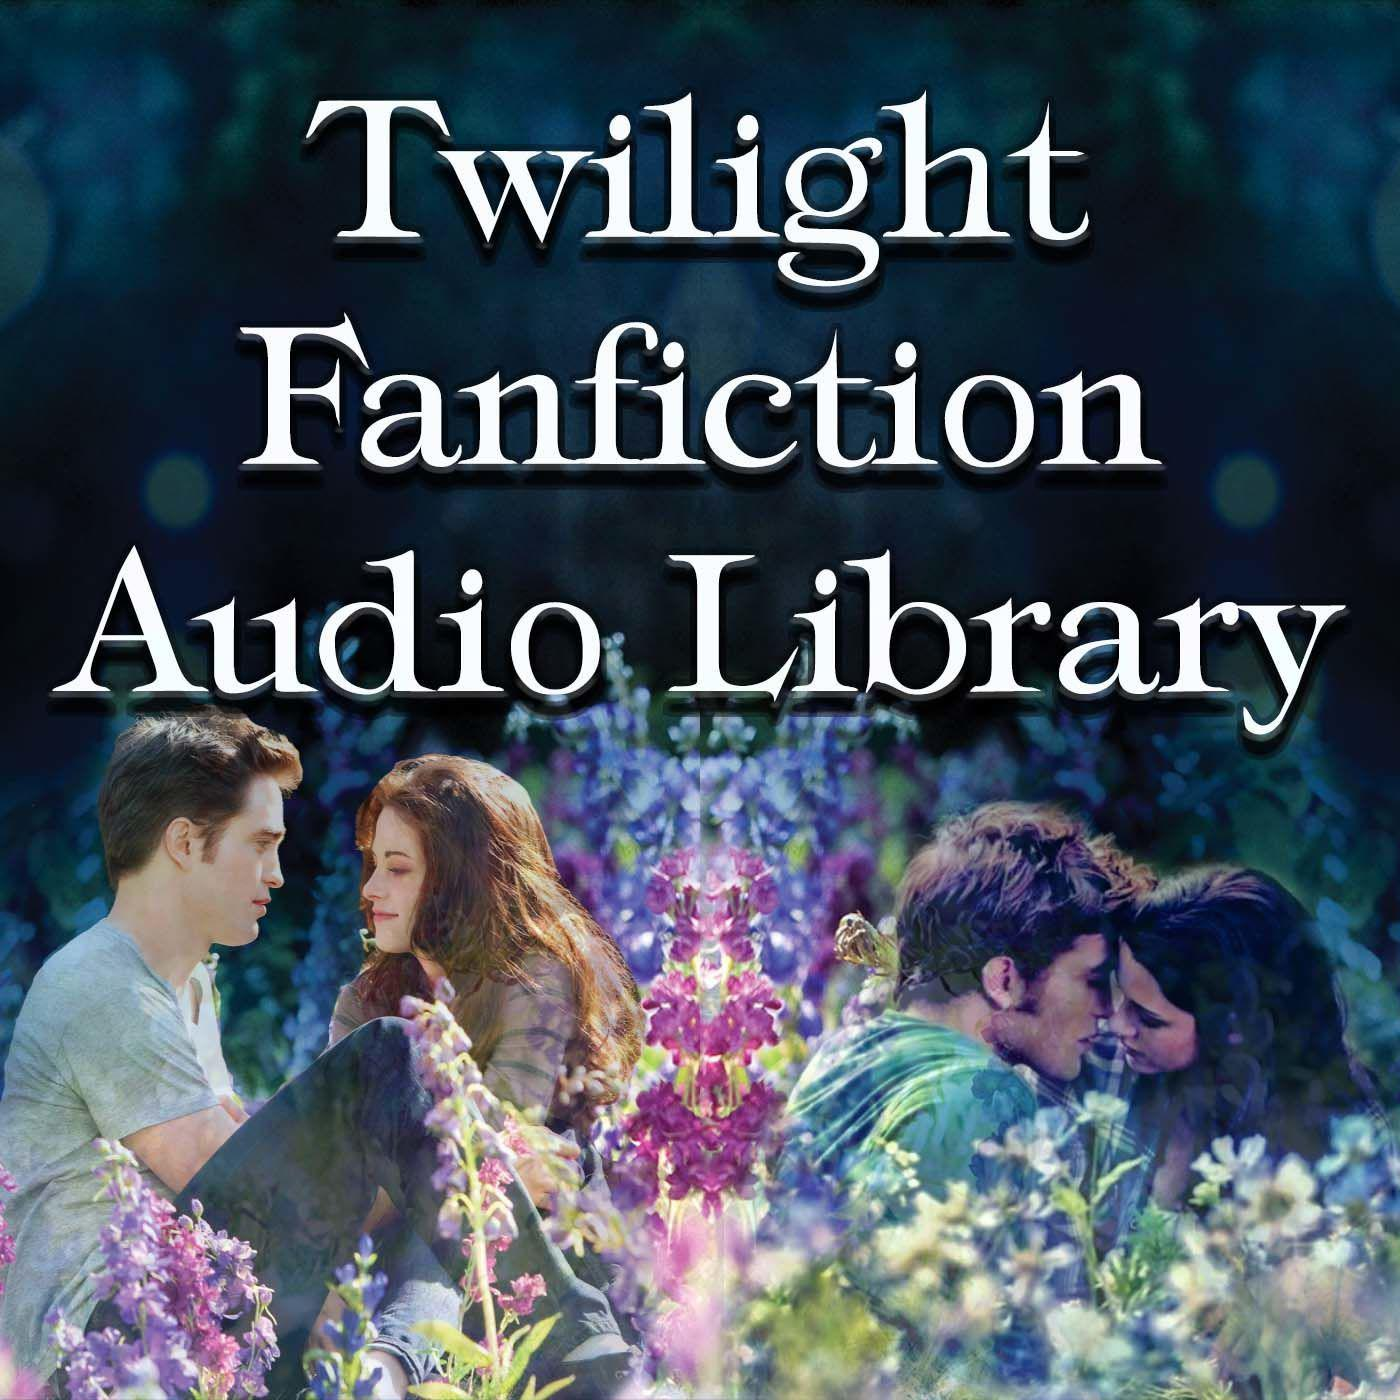 Twilight Fanfiction Audio Library (podcast) - Persephone Noble